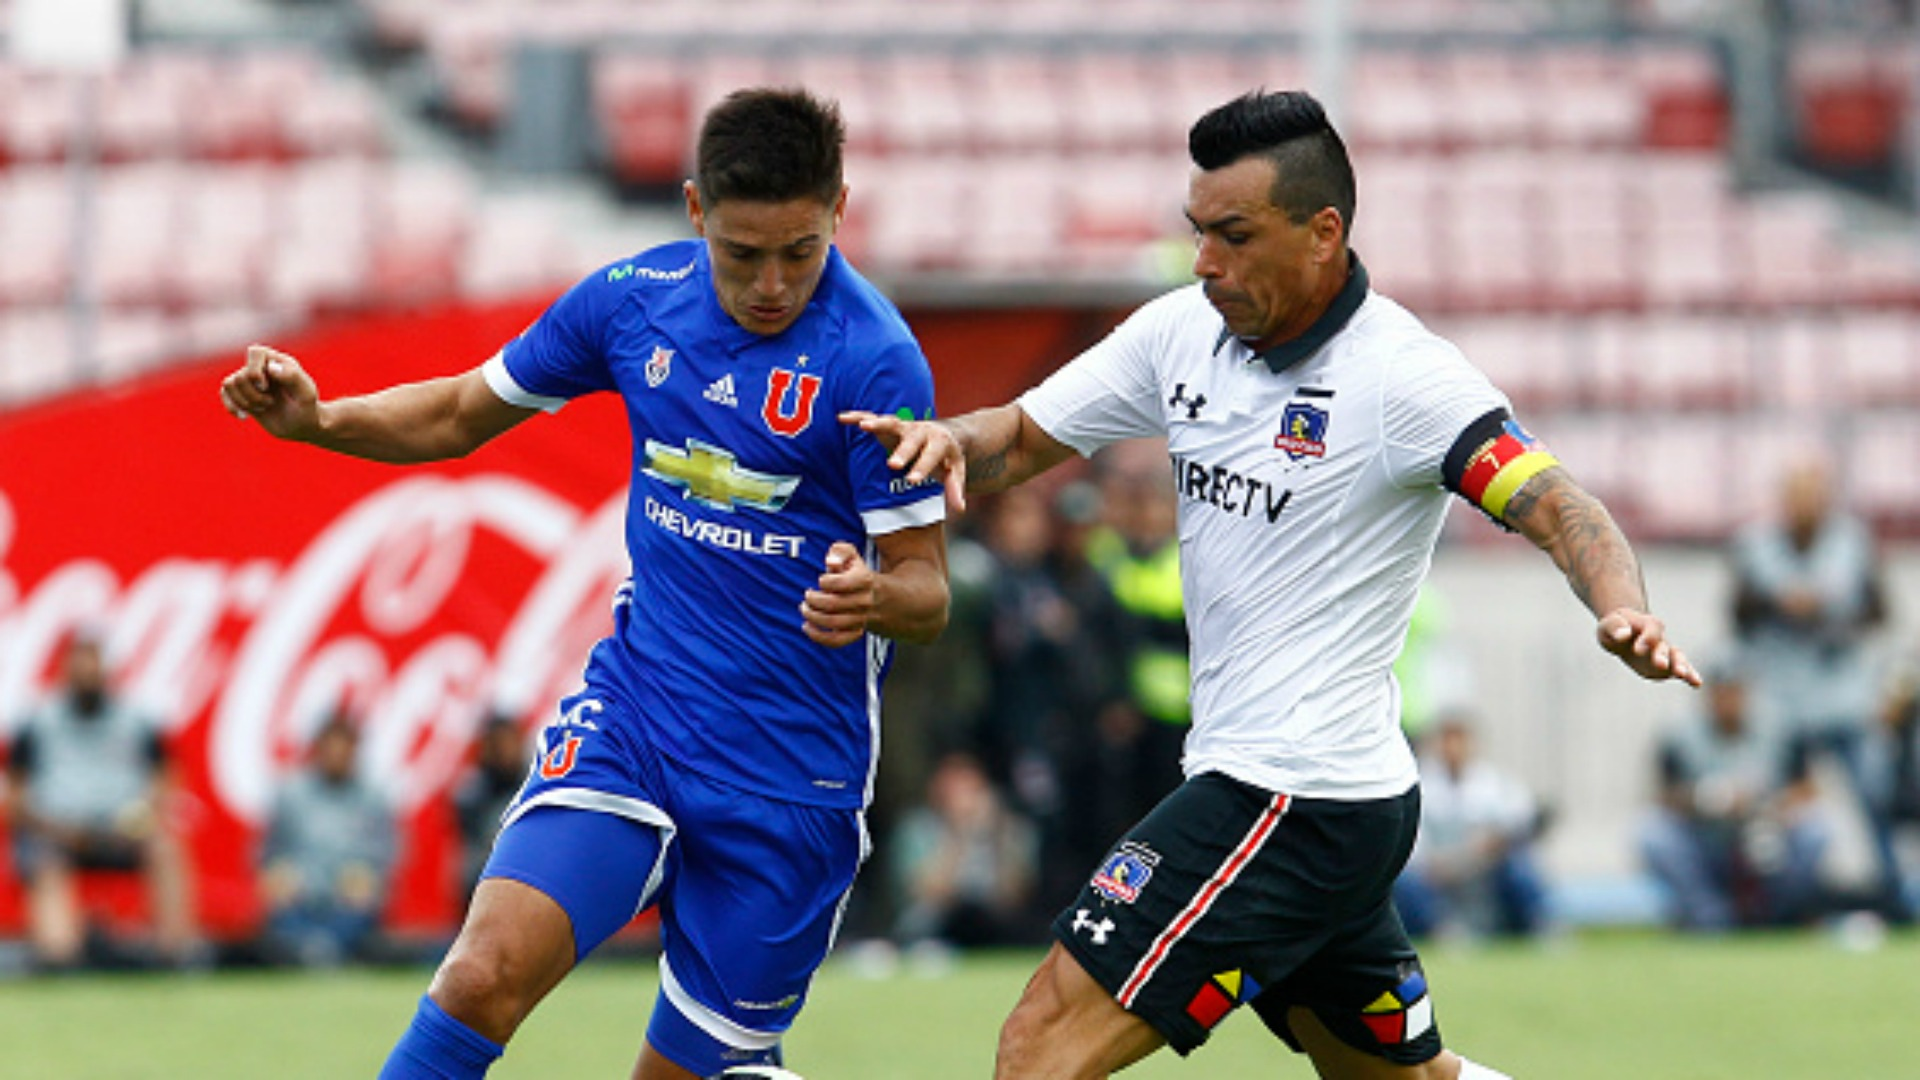 Universidad de Chile - Colo Colo